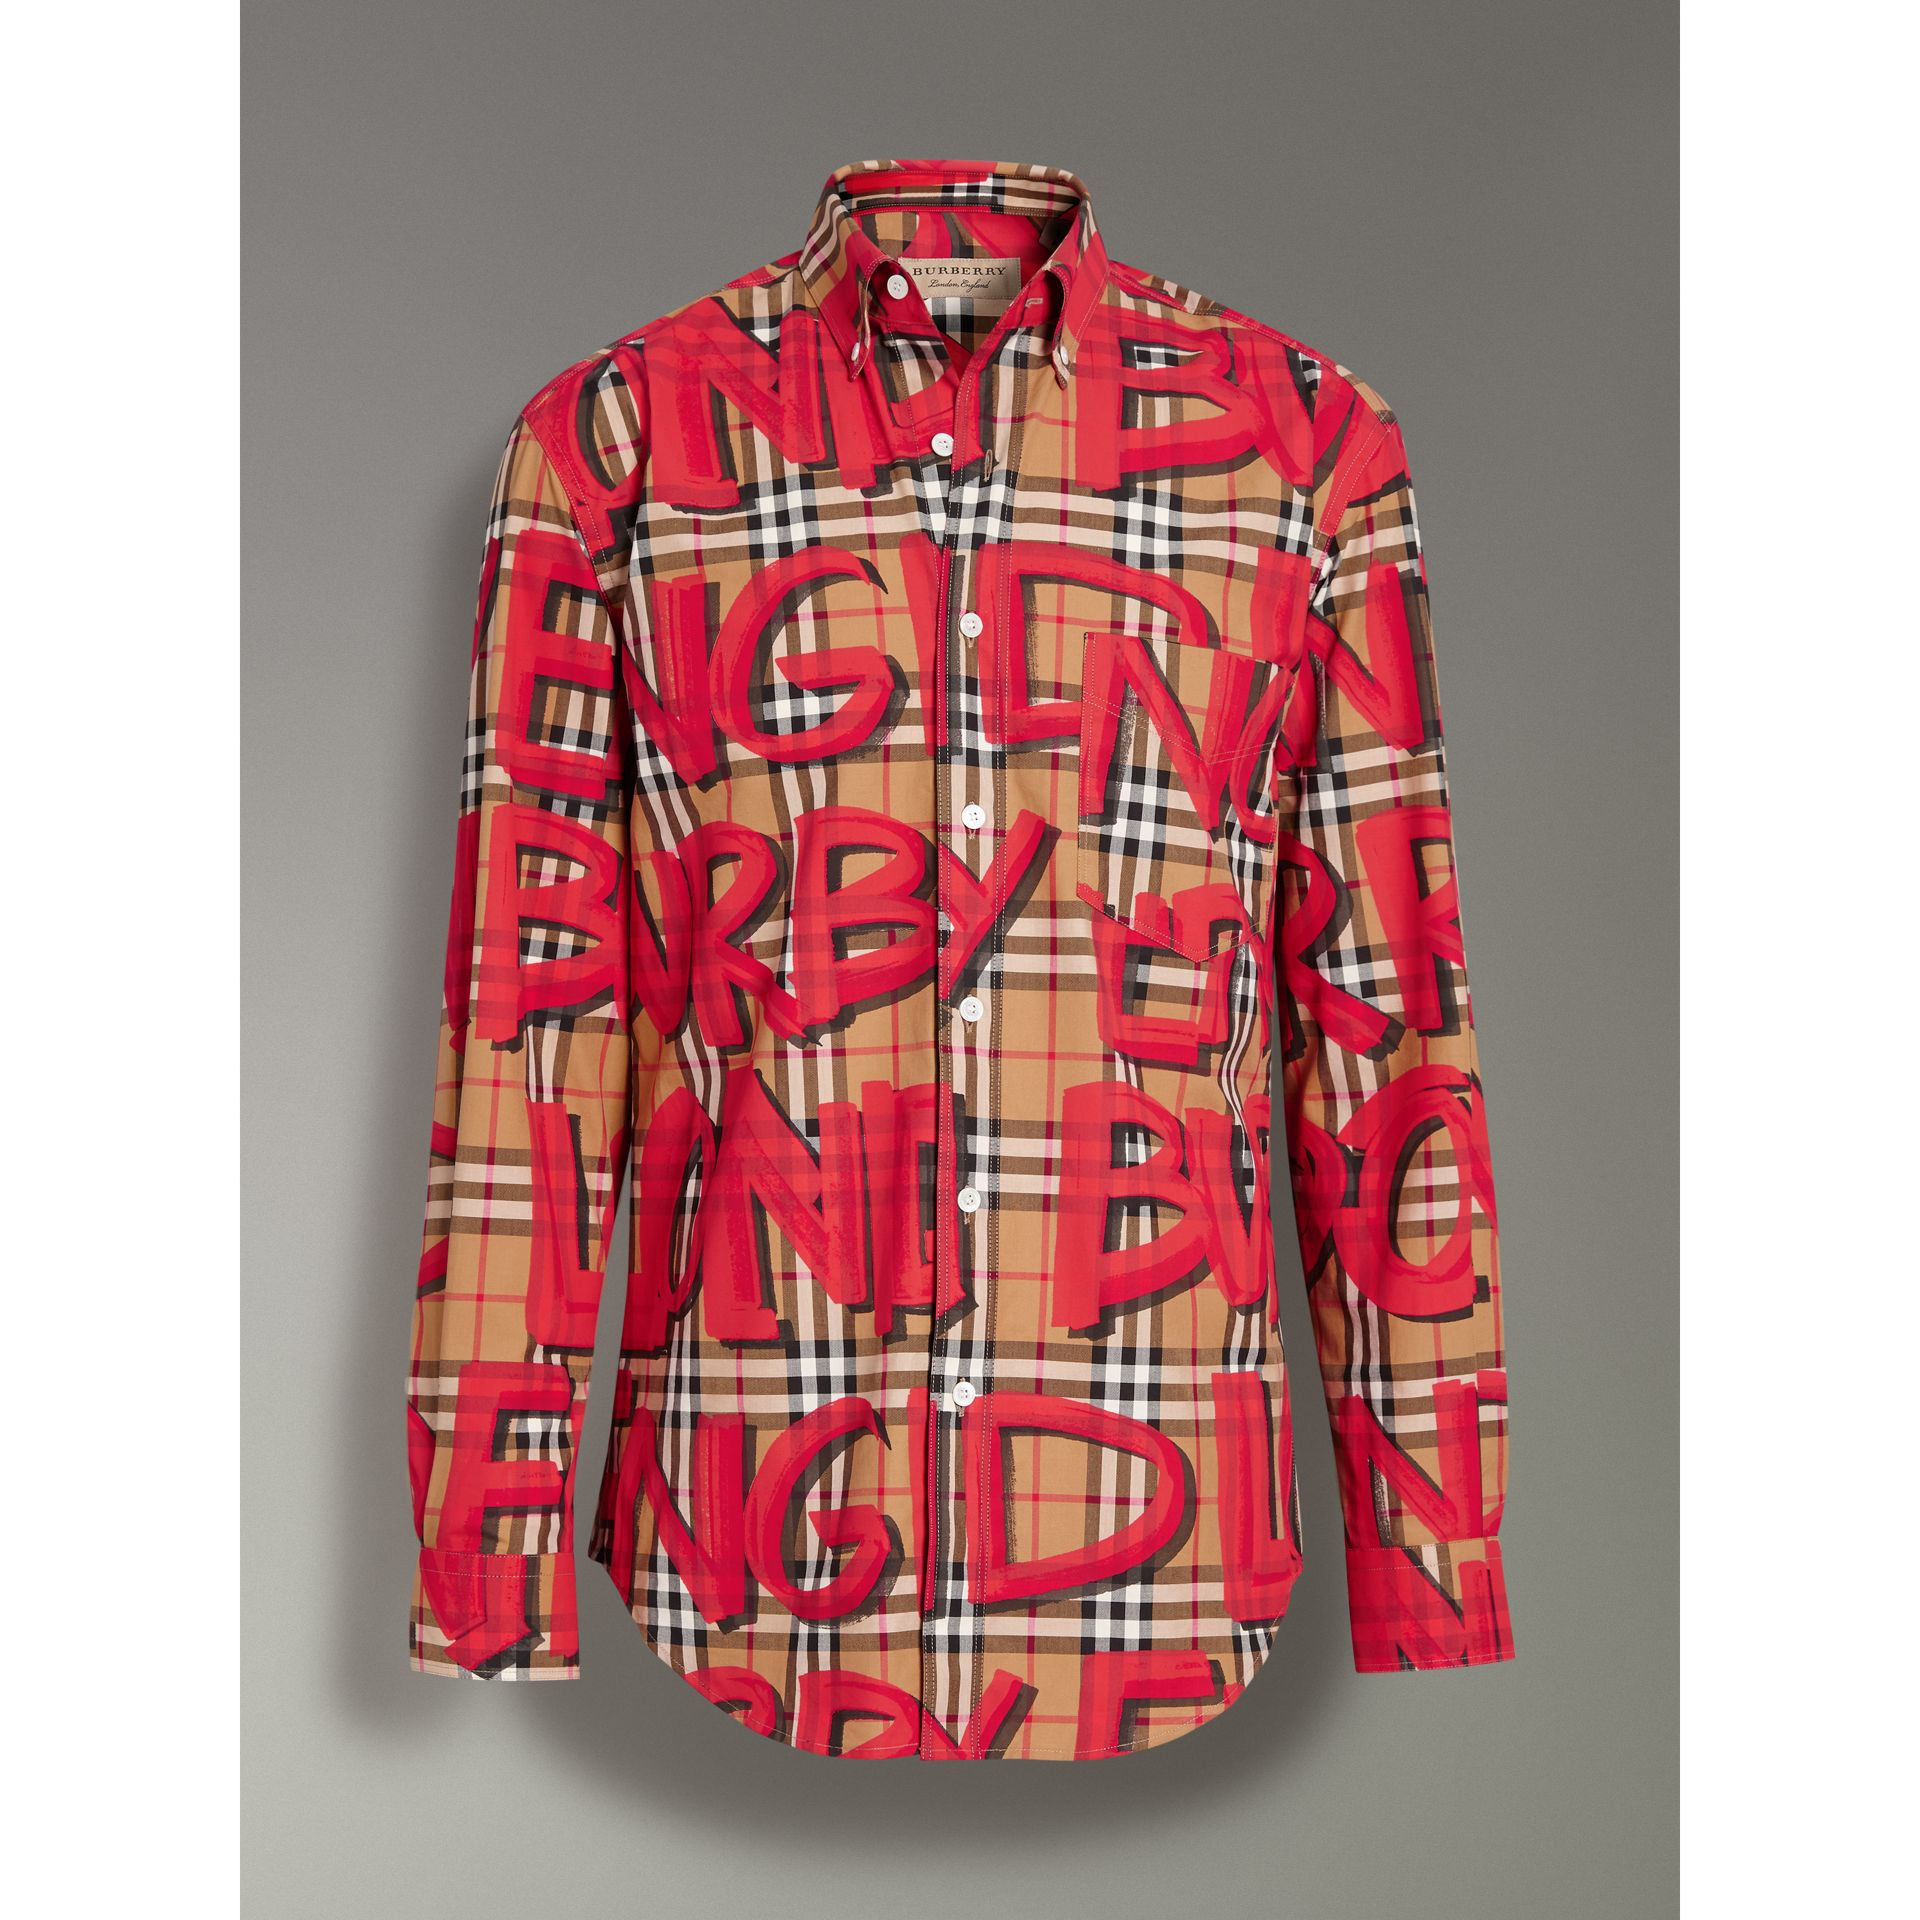 Graffiti Print Vintage Check Shirt in Bright Red - Men | Burberry United Kingdom - gallery image 3